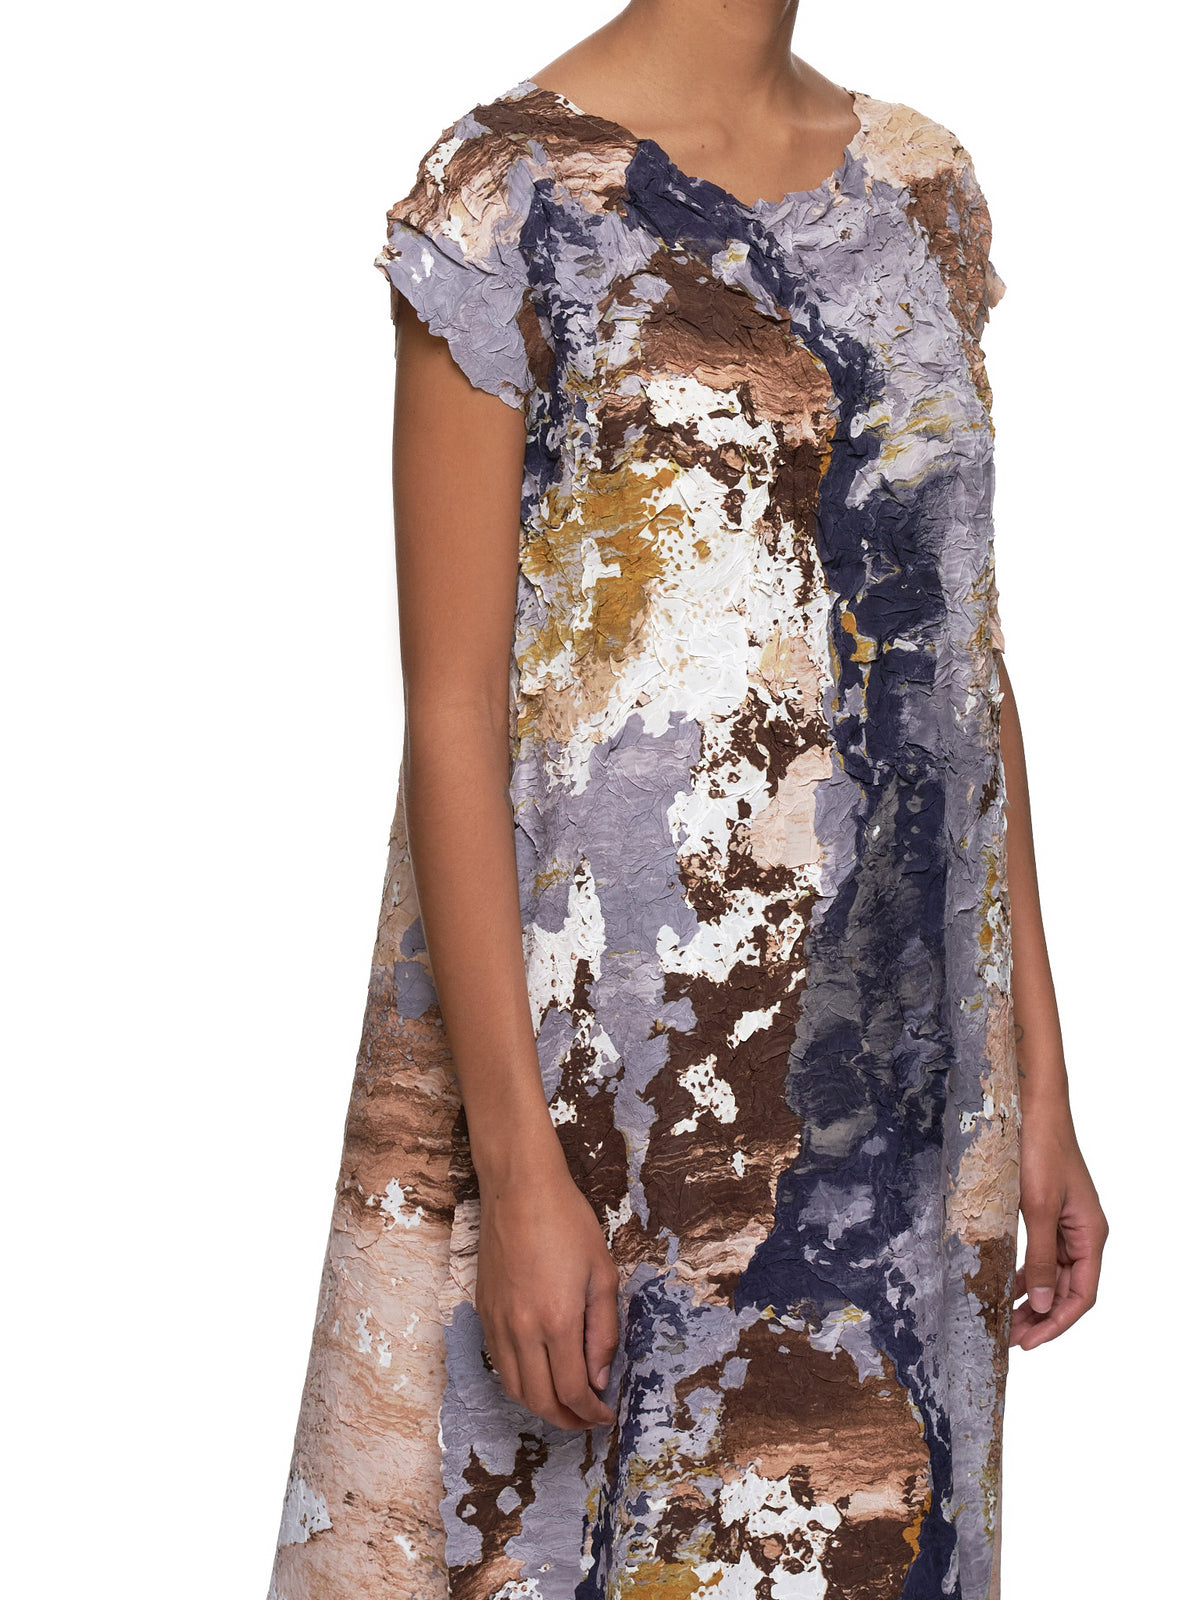 Paint Crush Dress (IM97FH639-GRAY-MULTI)